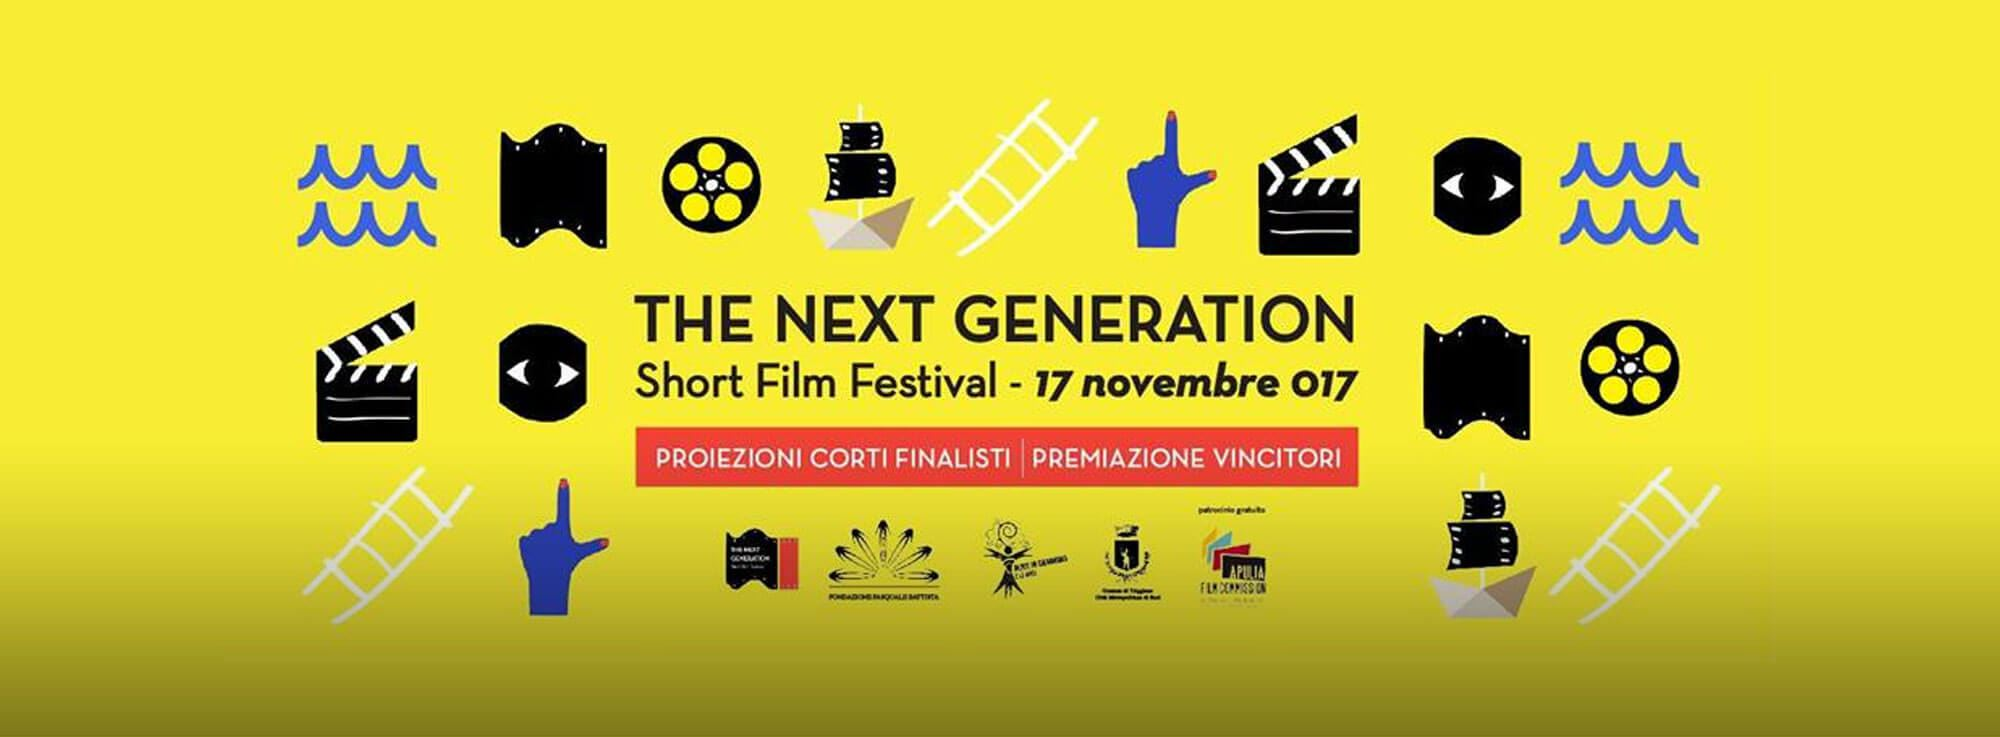 Bari: The Next Generation Short Film Festival 2017